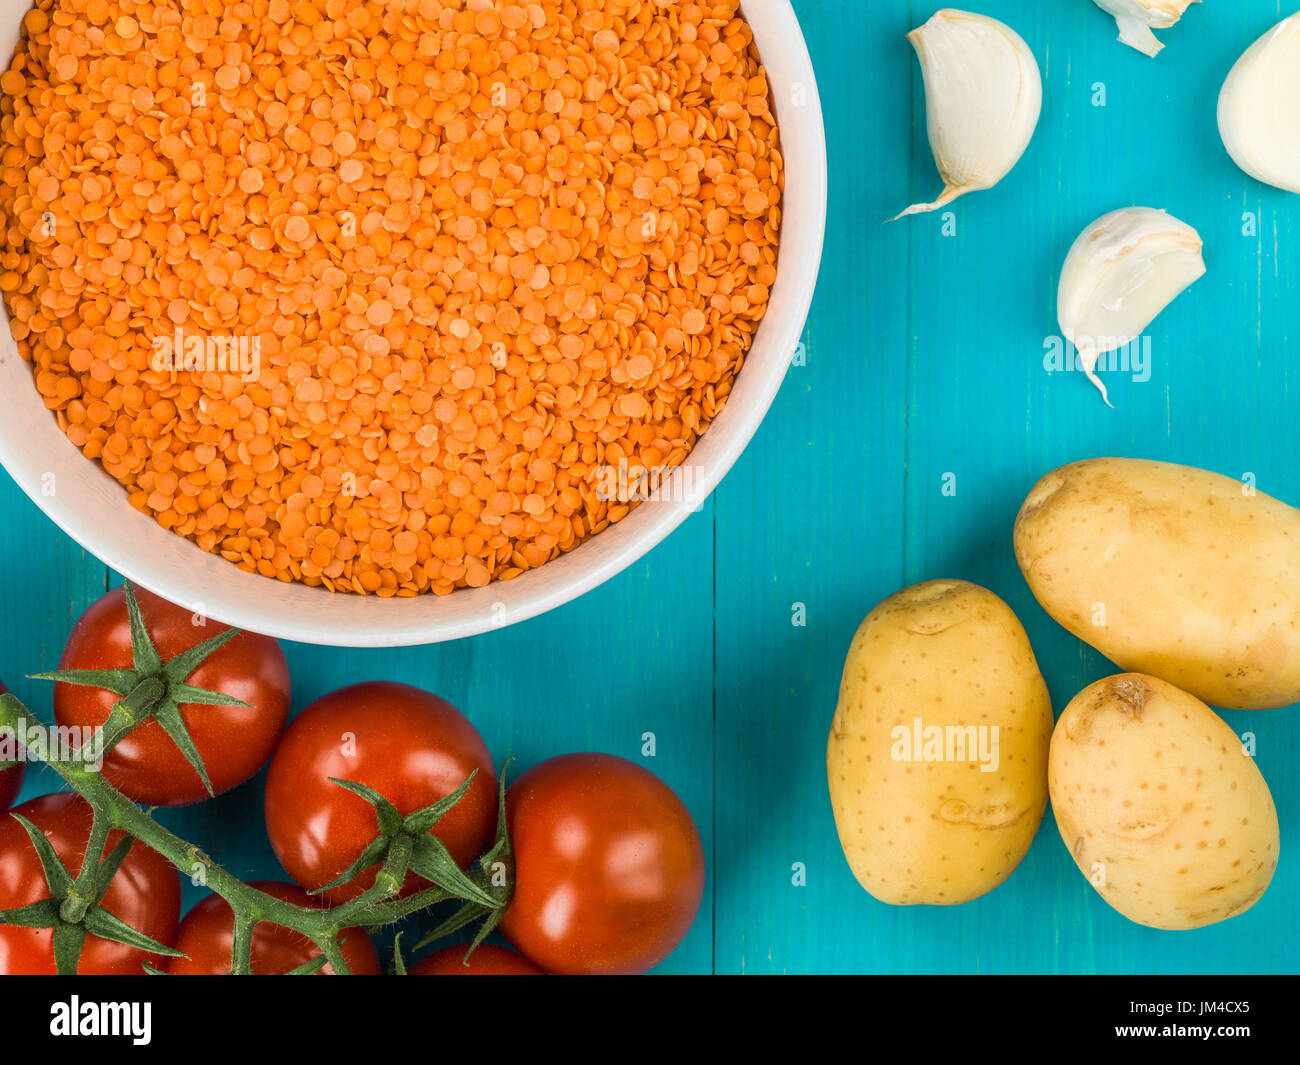 Bowl of Dry Uncooked Red Lentils Against a Blue Wooden Background - Stock Image